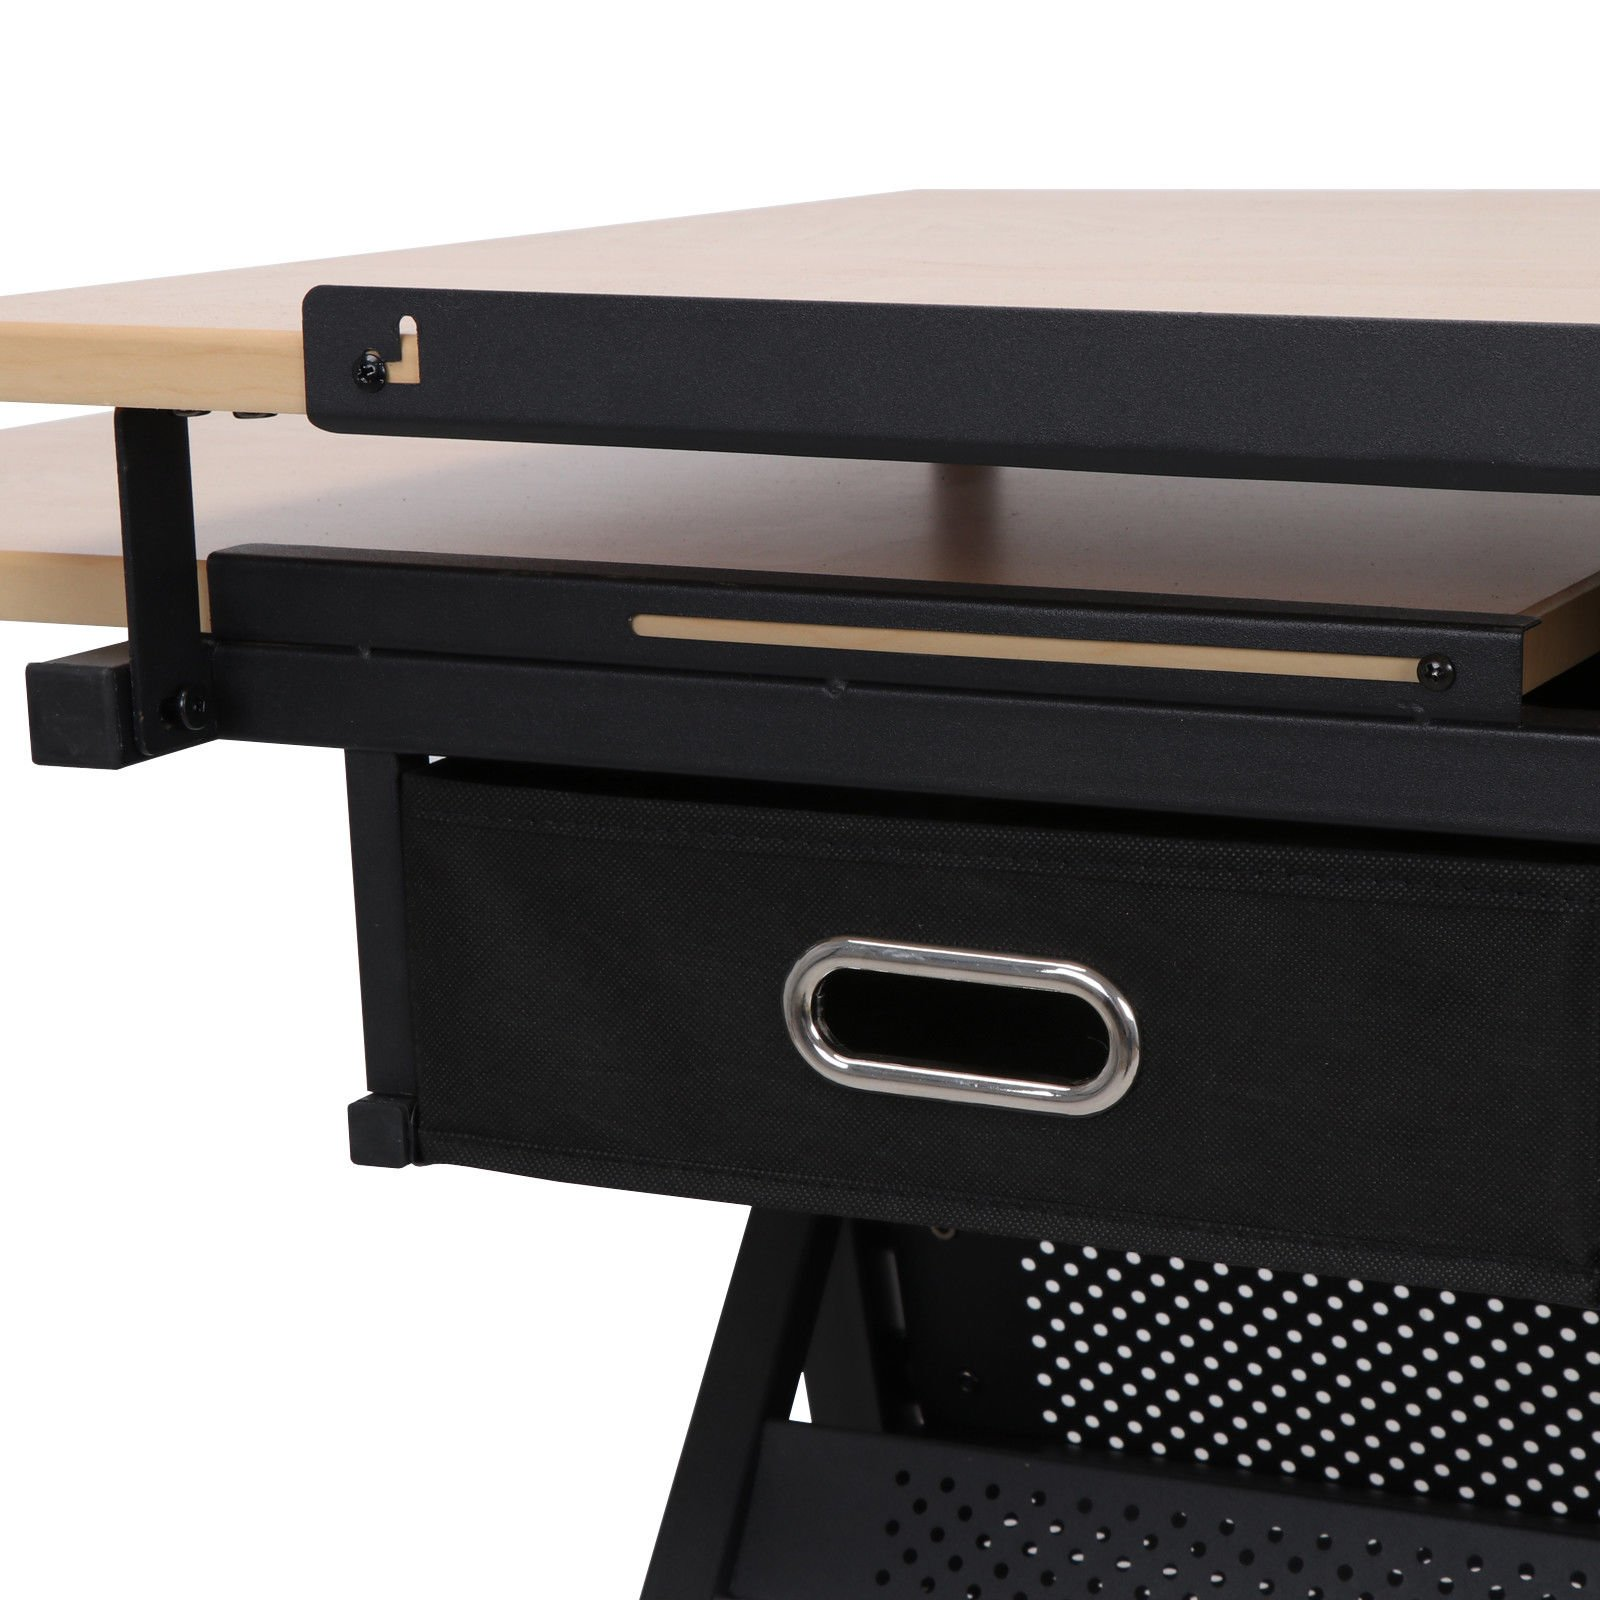 Tilting Tabletop Height Adjustable Drawing Desk with Padded Stool 2 Spacious Drawers Tools Storage Painting Drafting Writing Reading Study Table Draftsman Art Craft Hobby Studio Architect Office Work by HPW (Image #7)